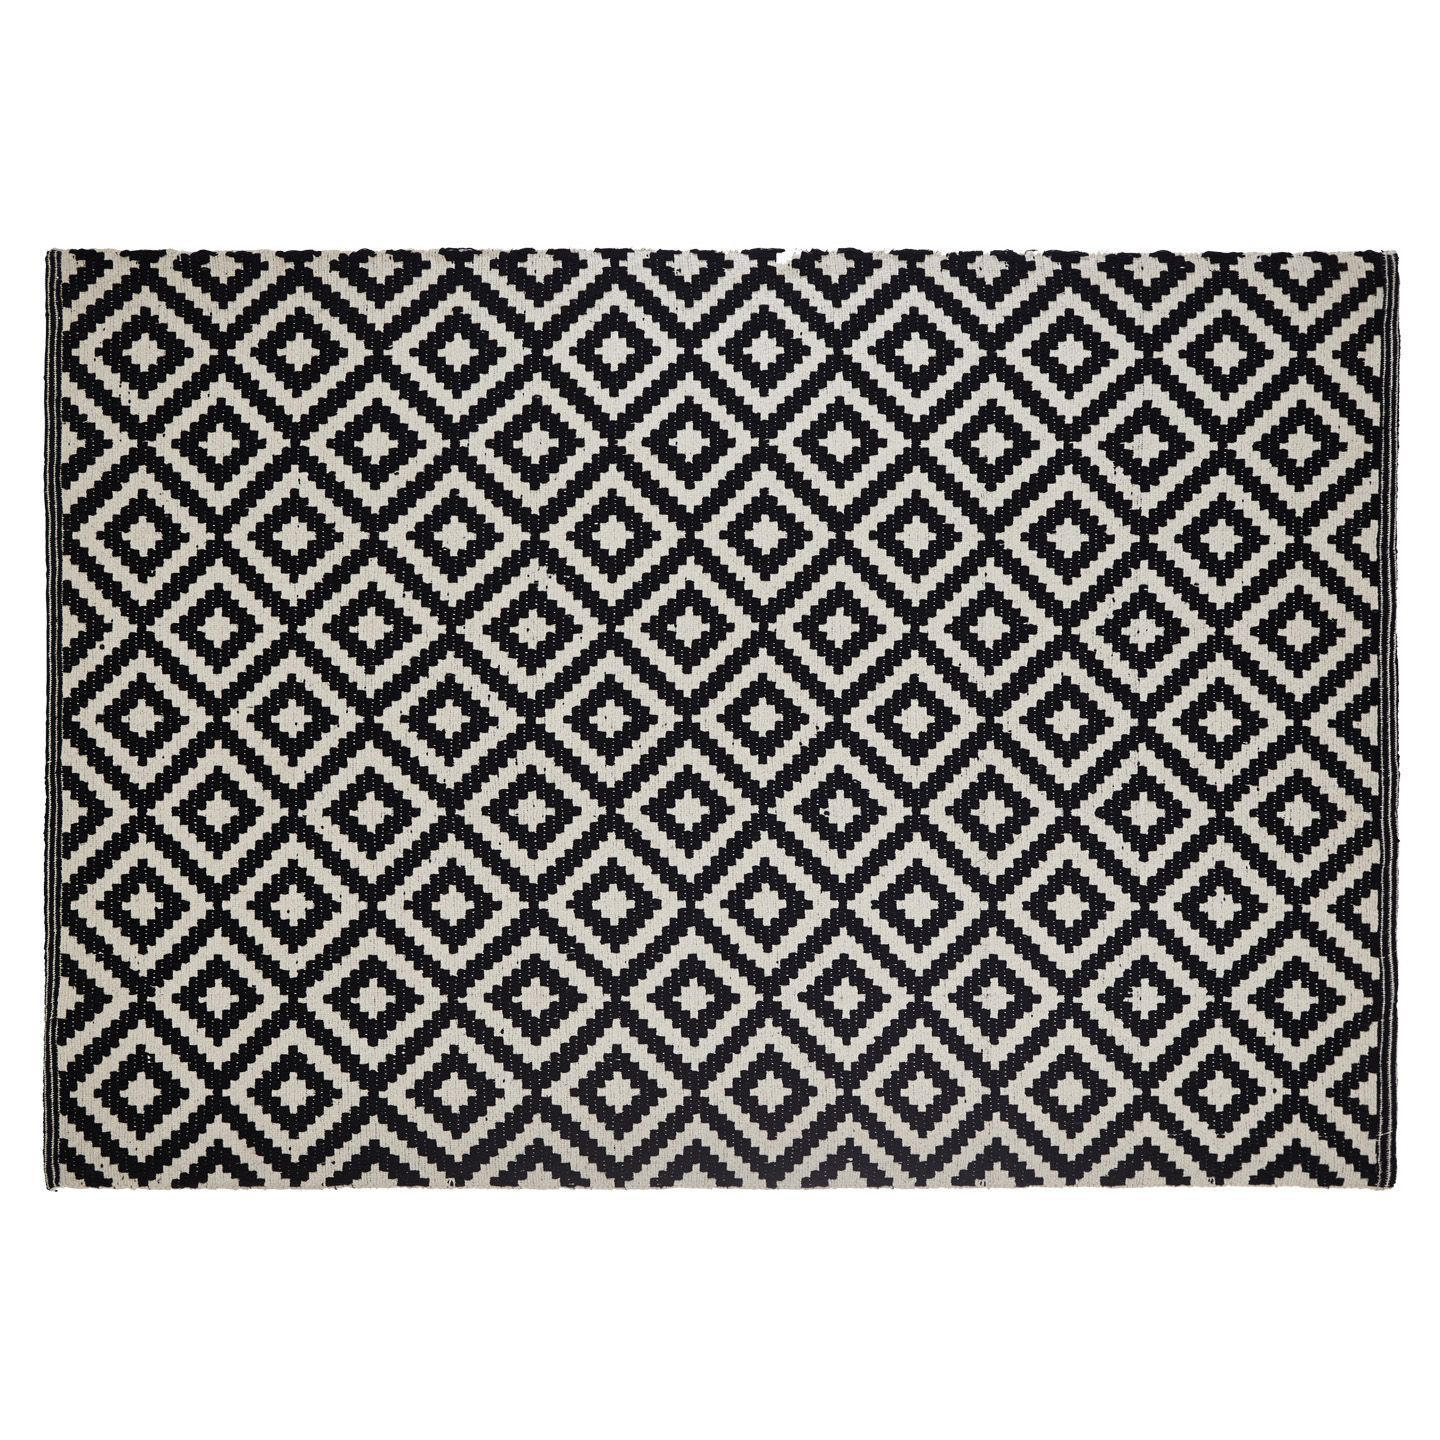 Black And White Geometric Rugs For Sale: DIY At B&Q